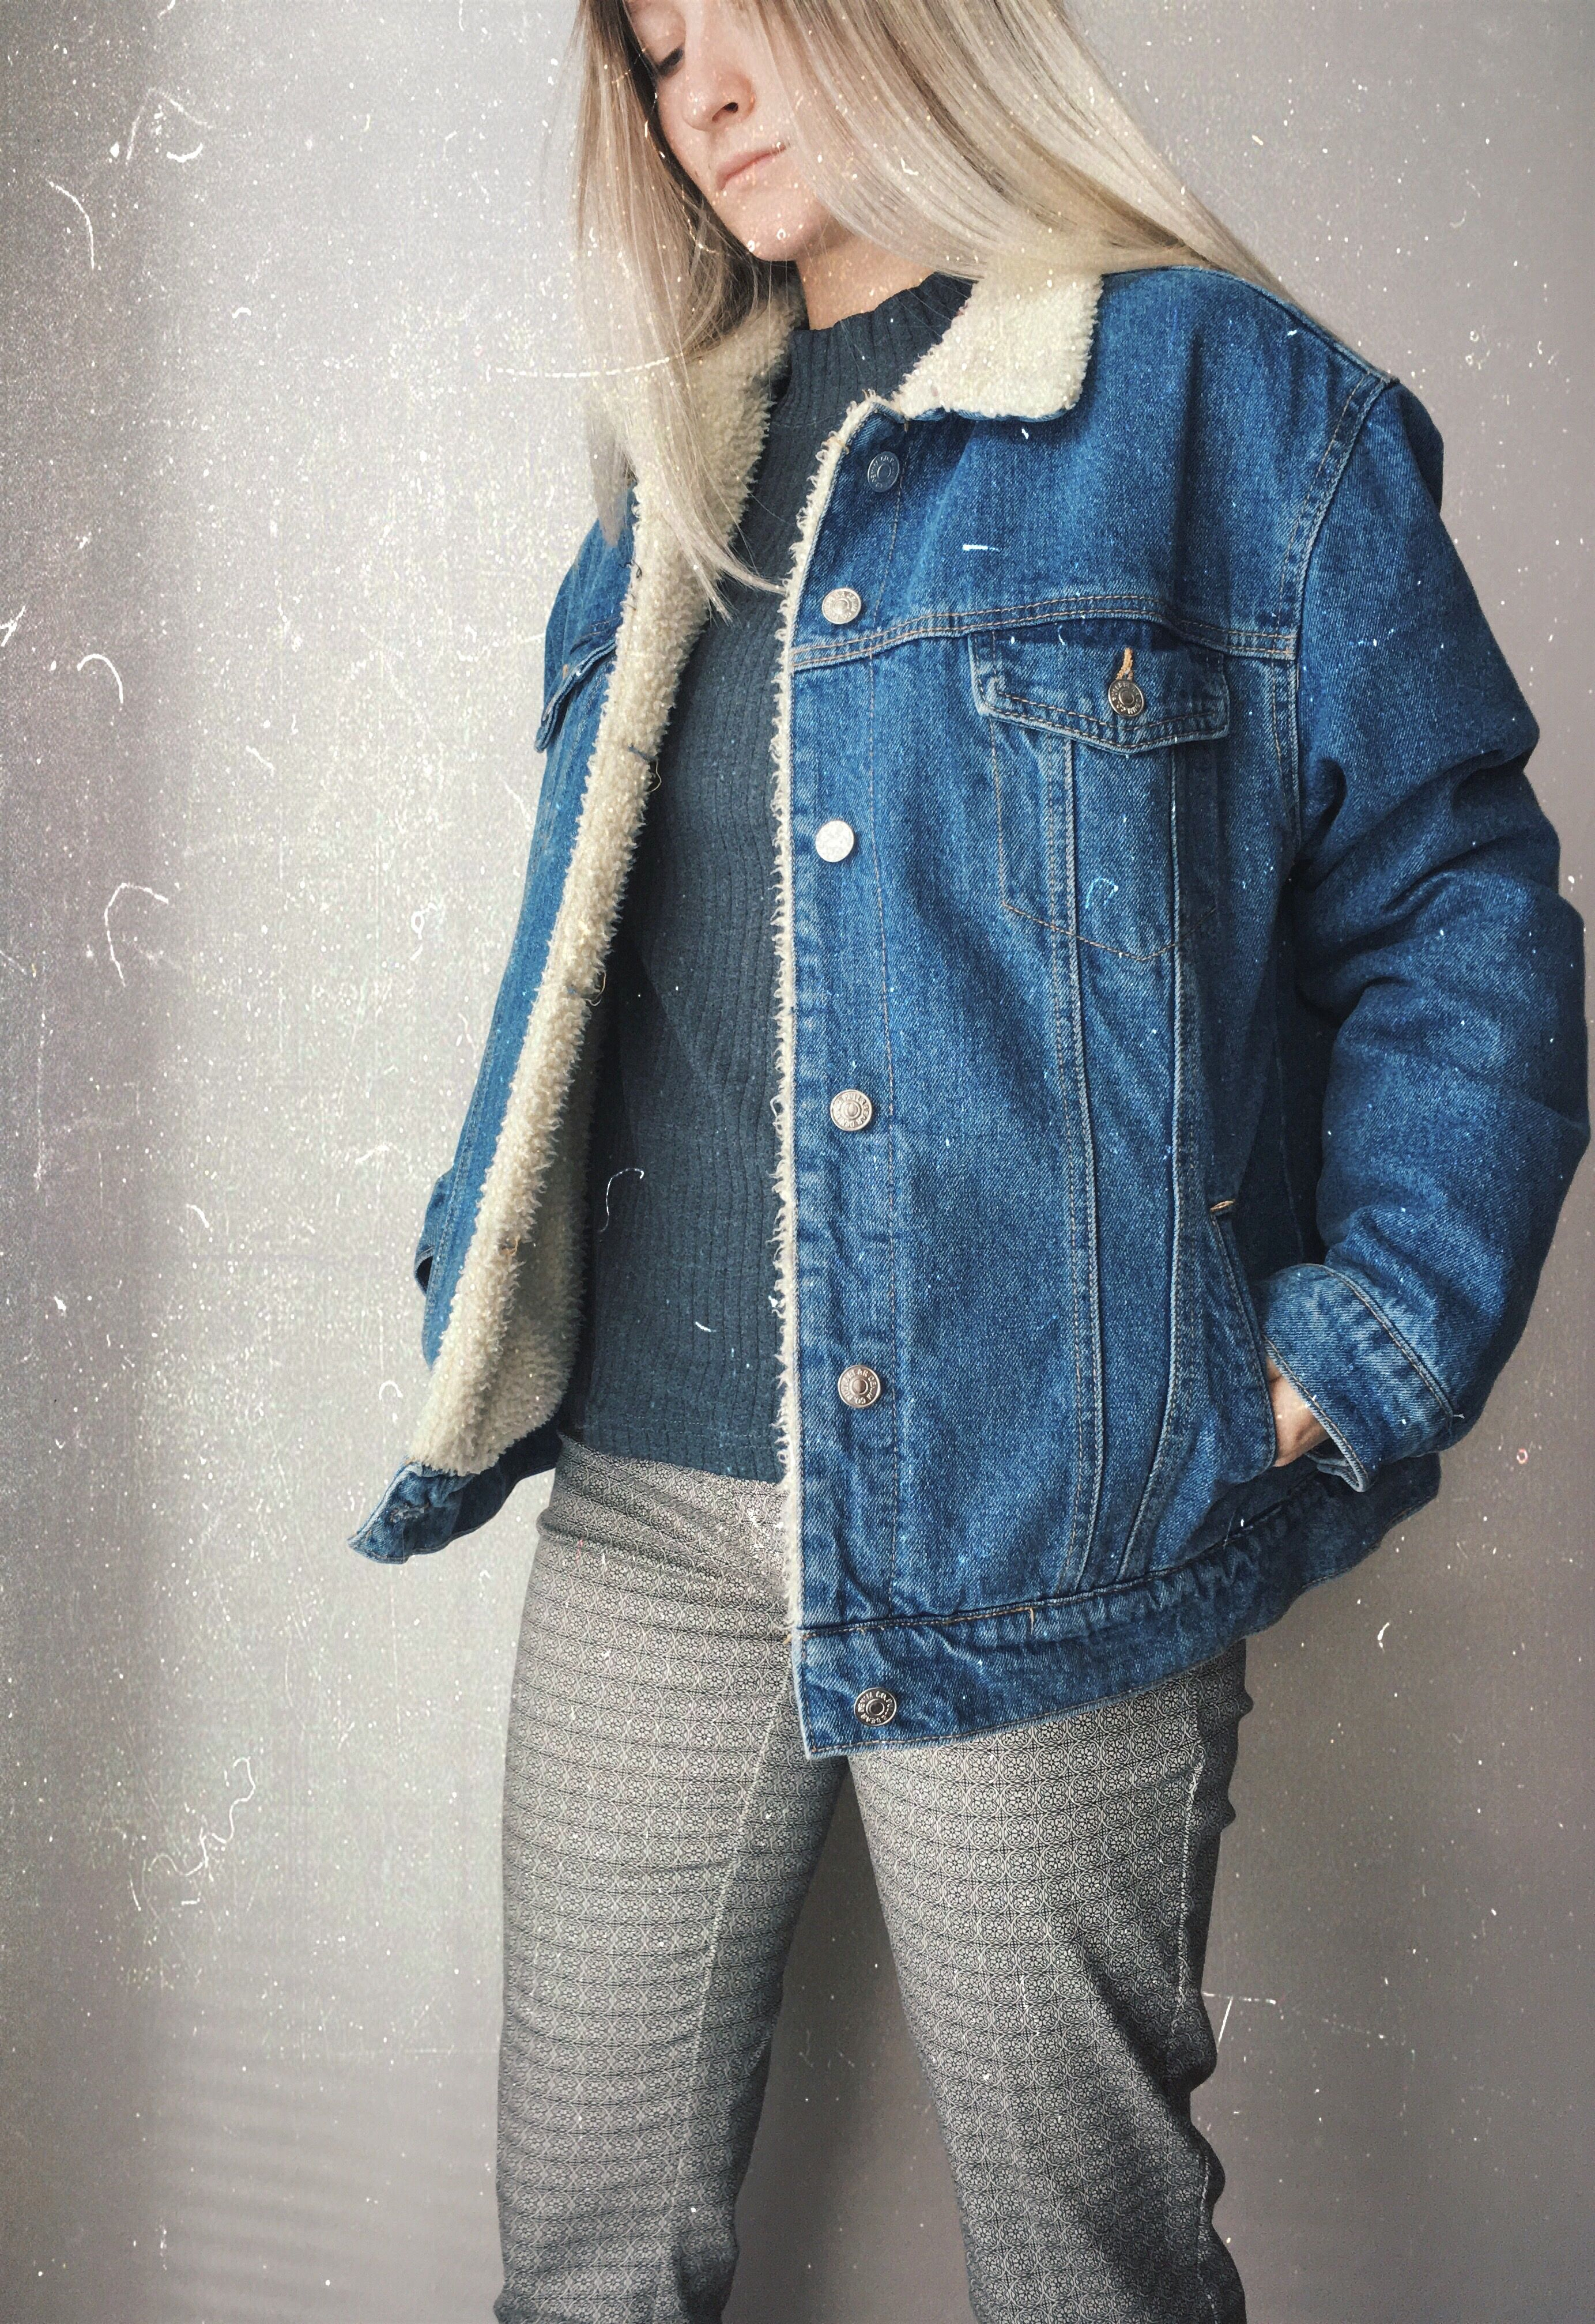 Pull Bear Jacket Clothes Fashion Outfits